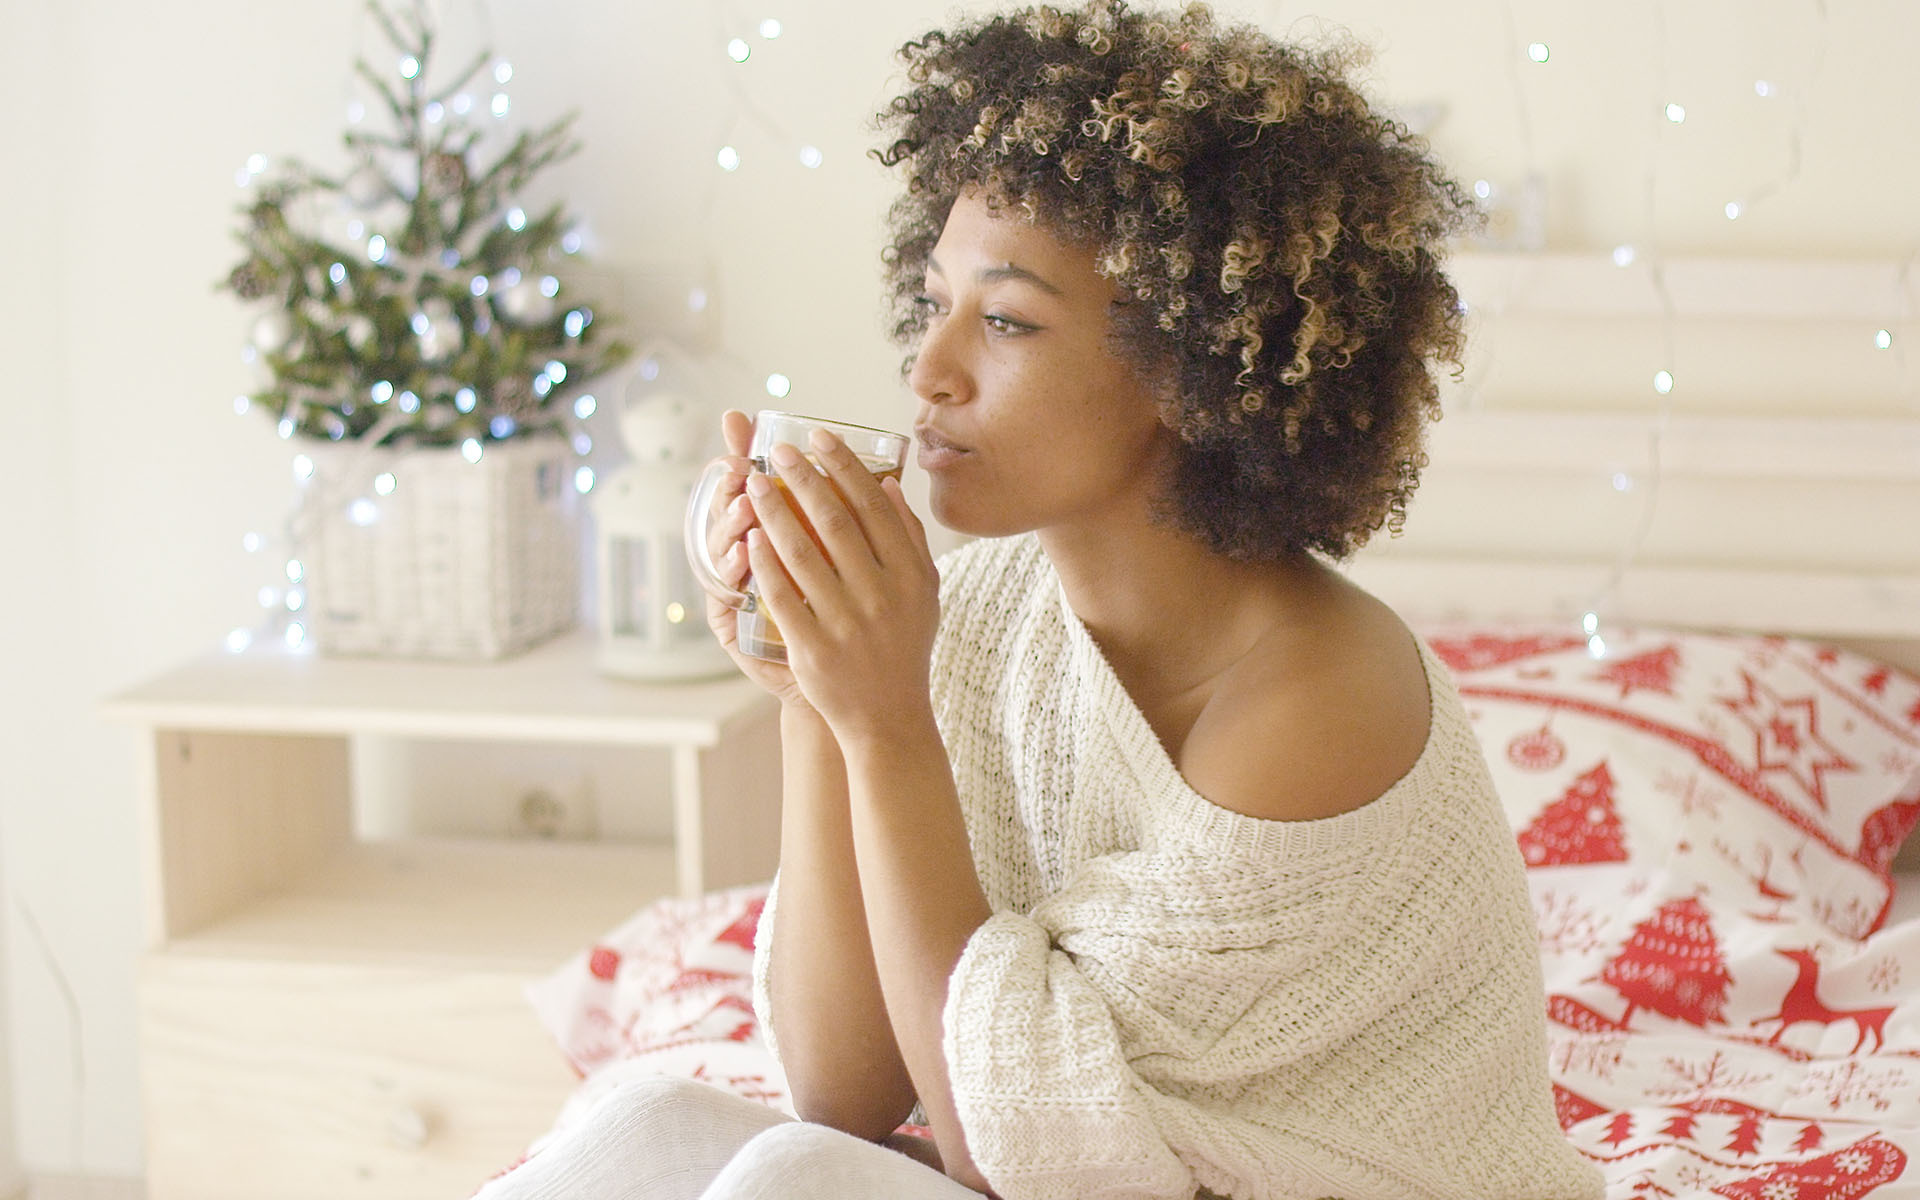 3 Ways To Find Calm in the Holiday Rush- Woman wearing white knitted sweater sips tea from mug while seated in bed. Her bedroom is white with a small Christmas tree in the corner and festive red and white bed sheets on the bed.